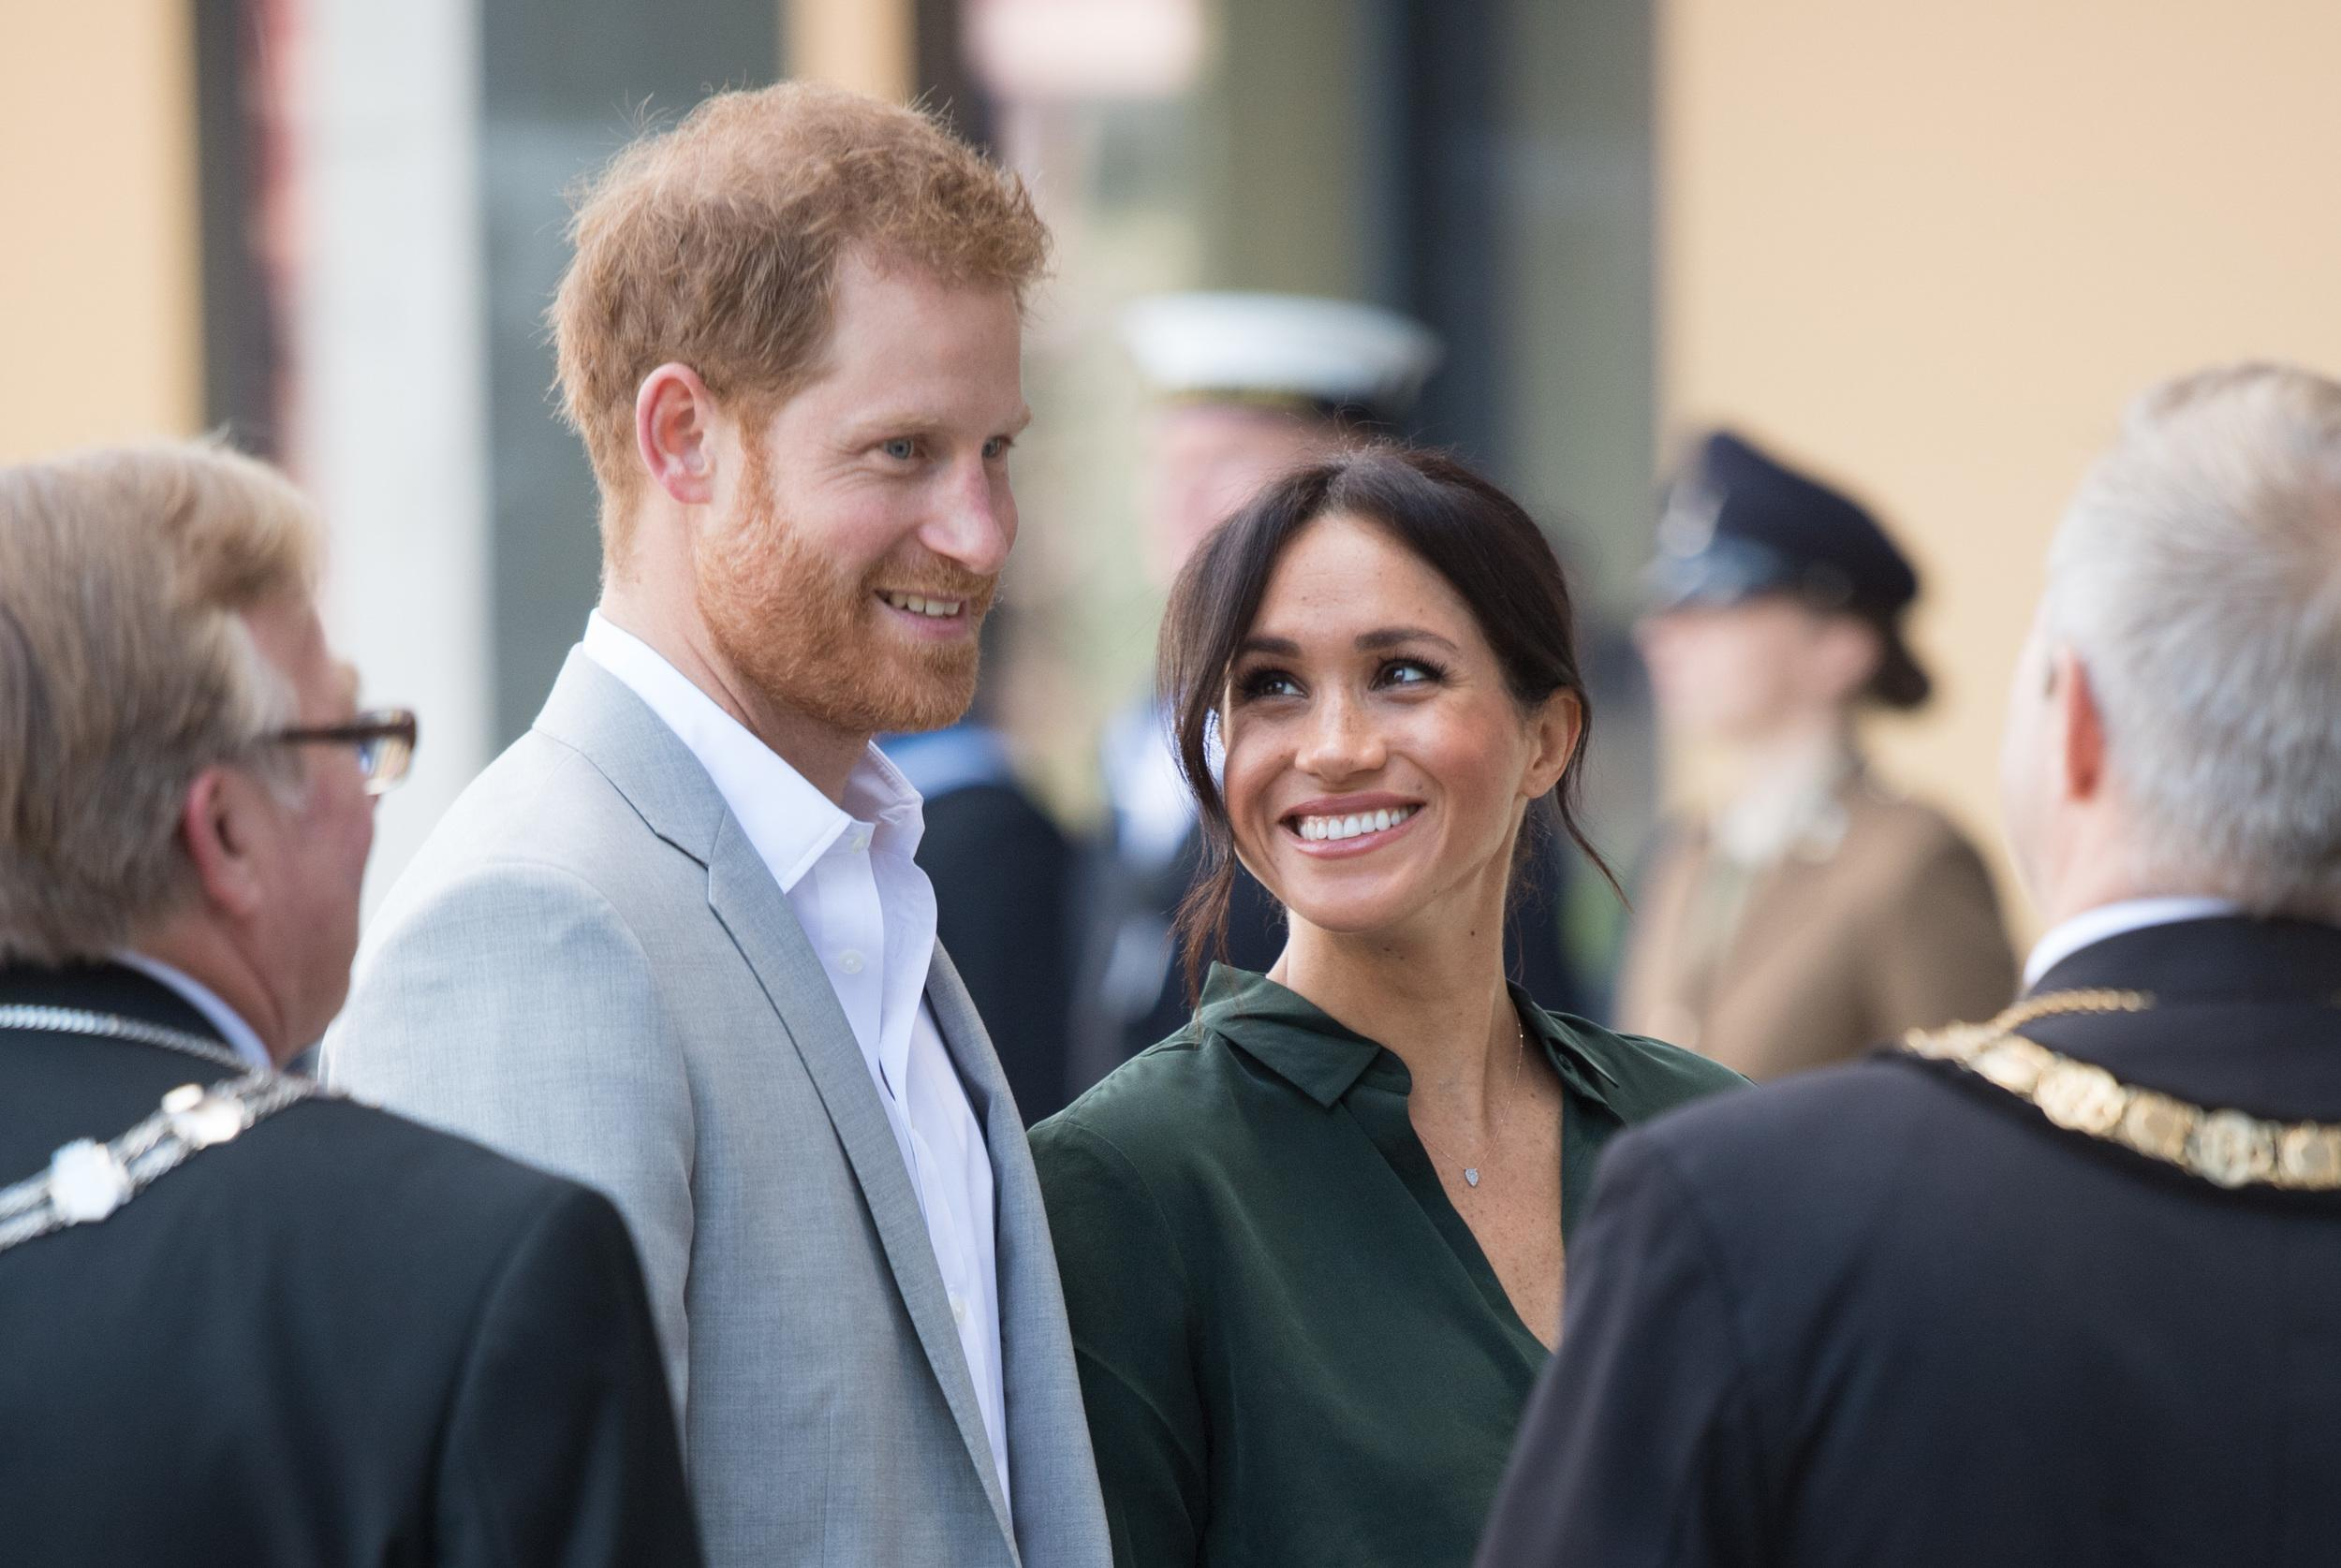 The Duke and Duchess of Sussex depart during a visit to the University of Chichester, Bognor Regis, West Sussex, as part of their first joint official visit to Sussex.